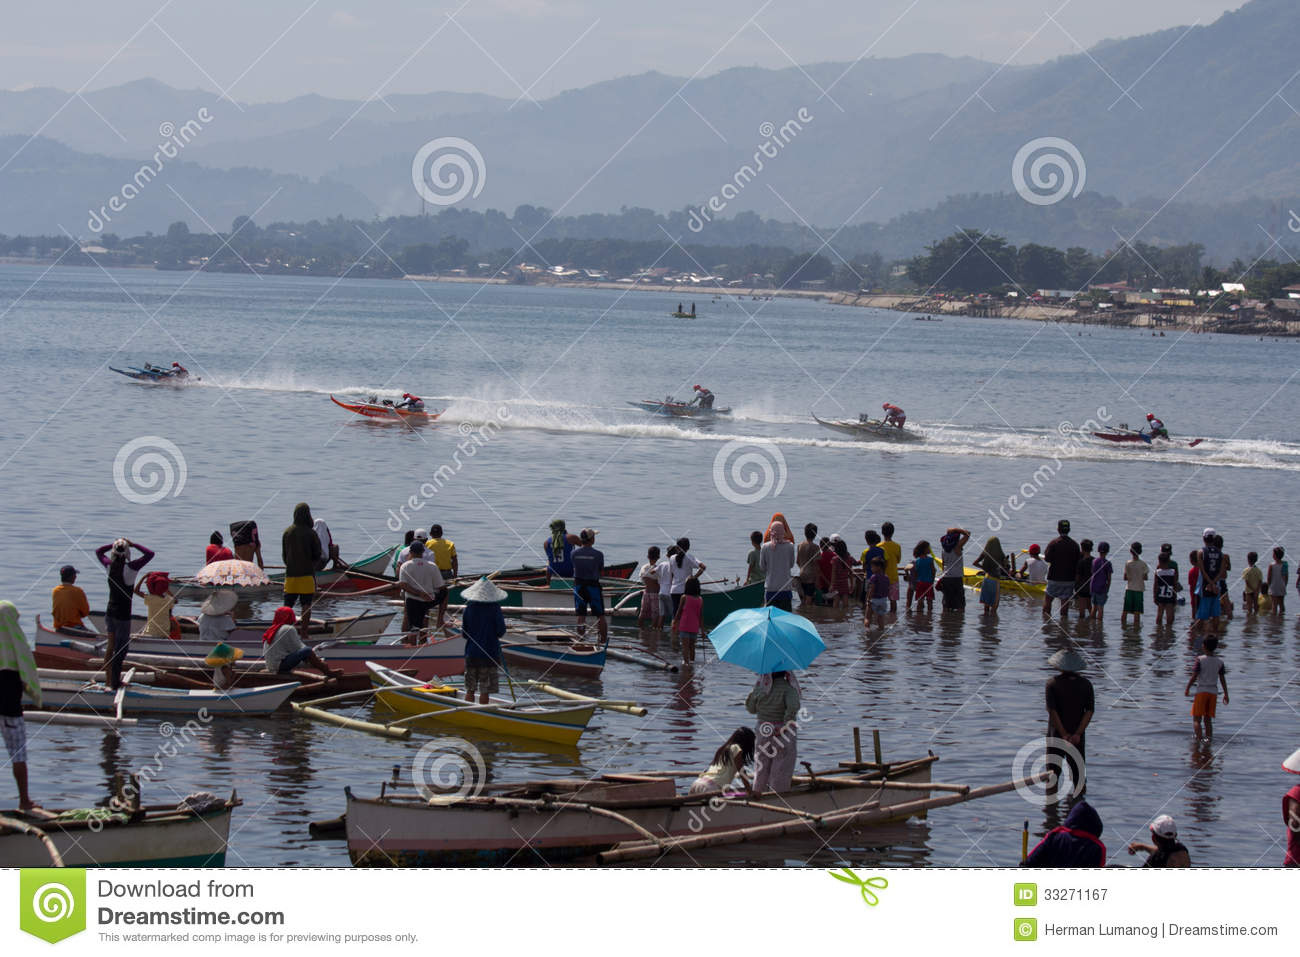 Wooden Speed Boat Race In Cagayan De Oro City Editorial Photography - Image: 33271167